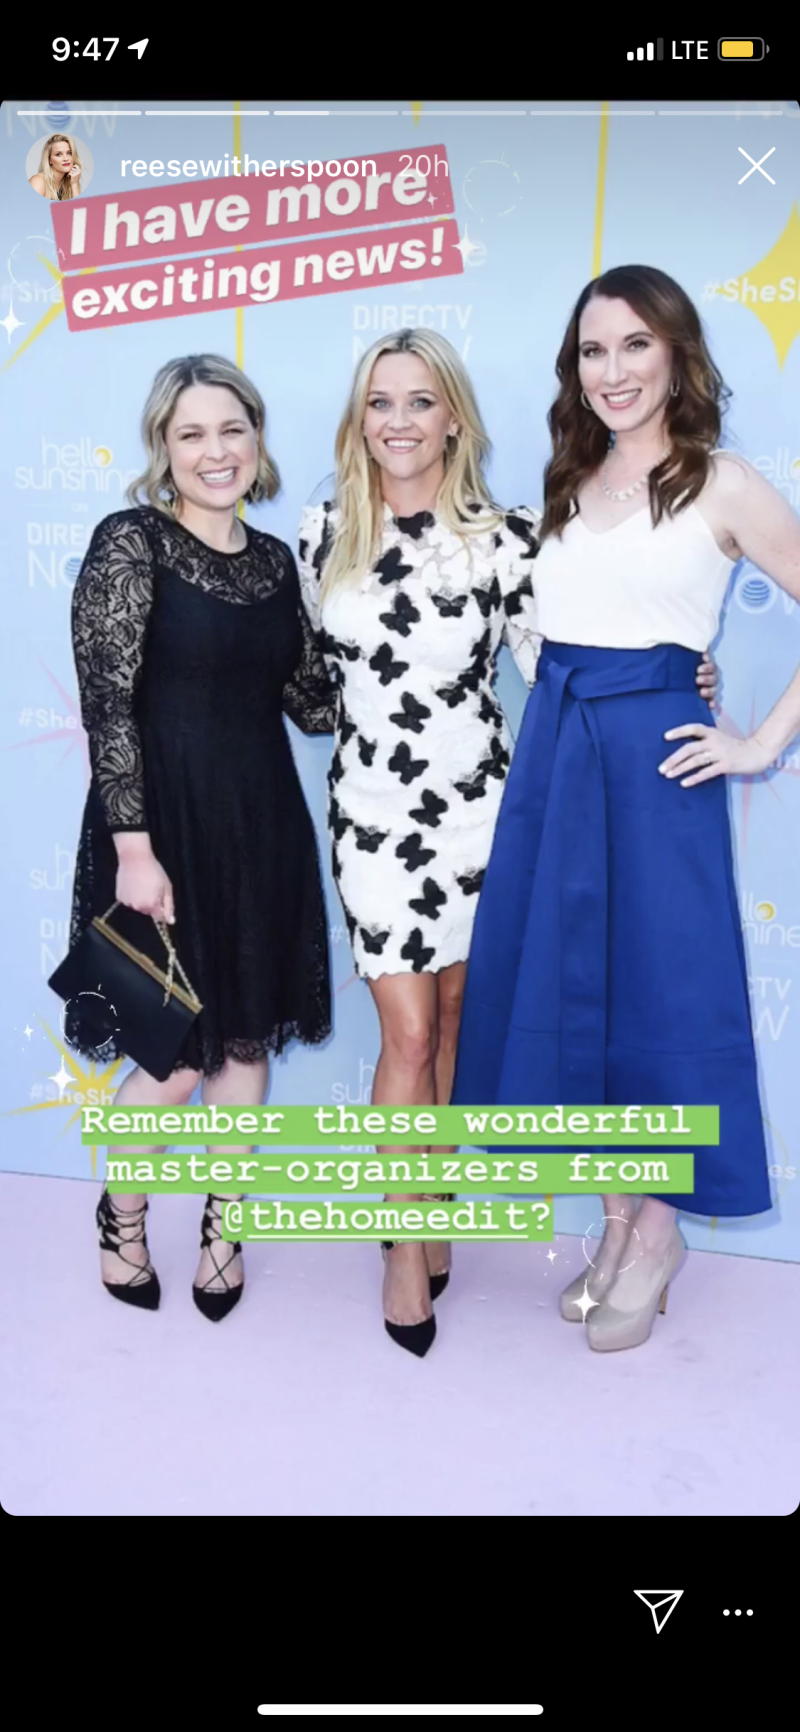 Reese Witherspoon, Clea Shearer, and Joanna Teplin